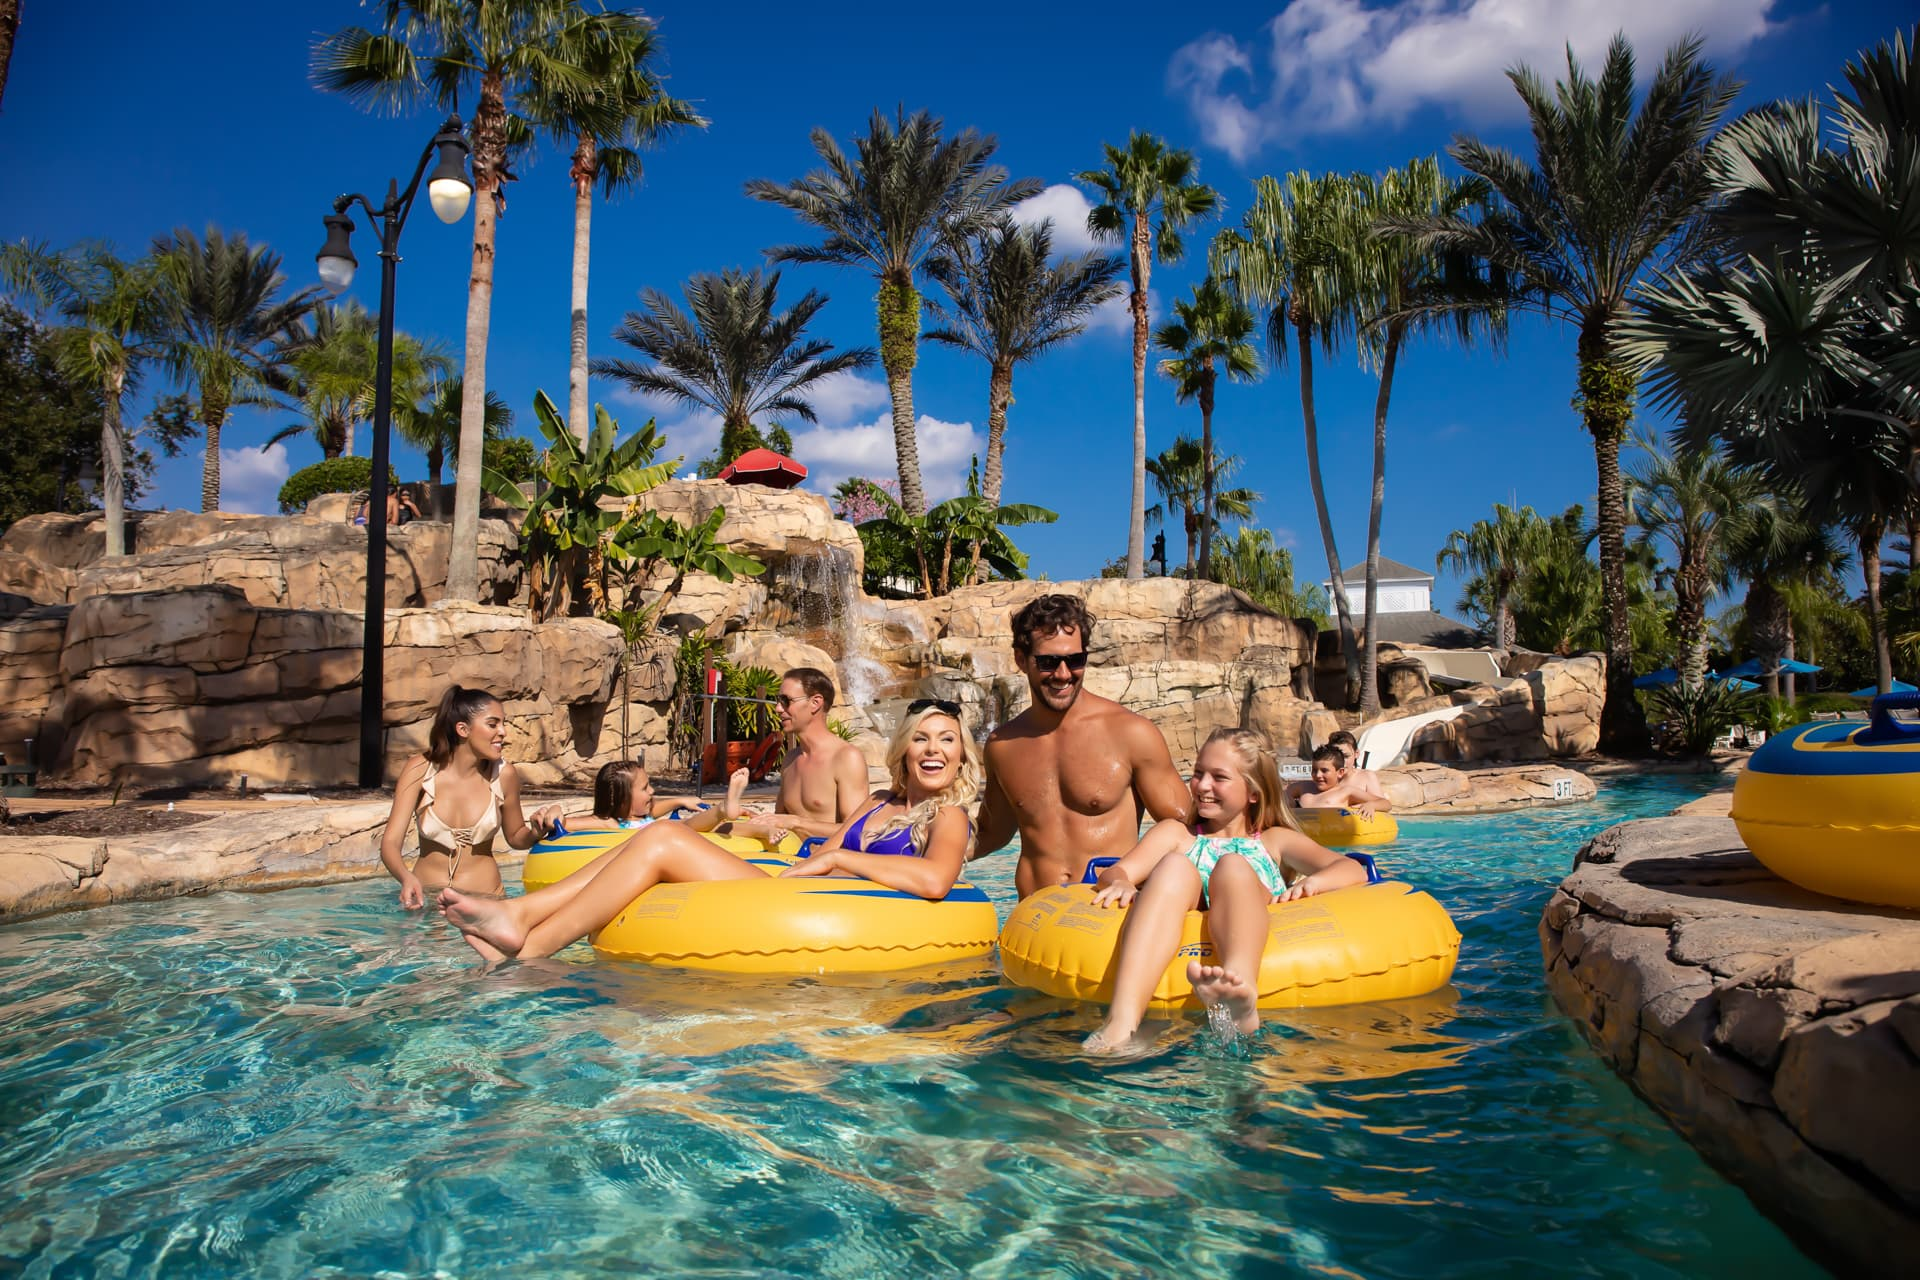 Families riding in tubes on the lazy river ride at the water park at The Bear's Den Resort Orlando.